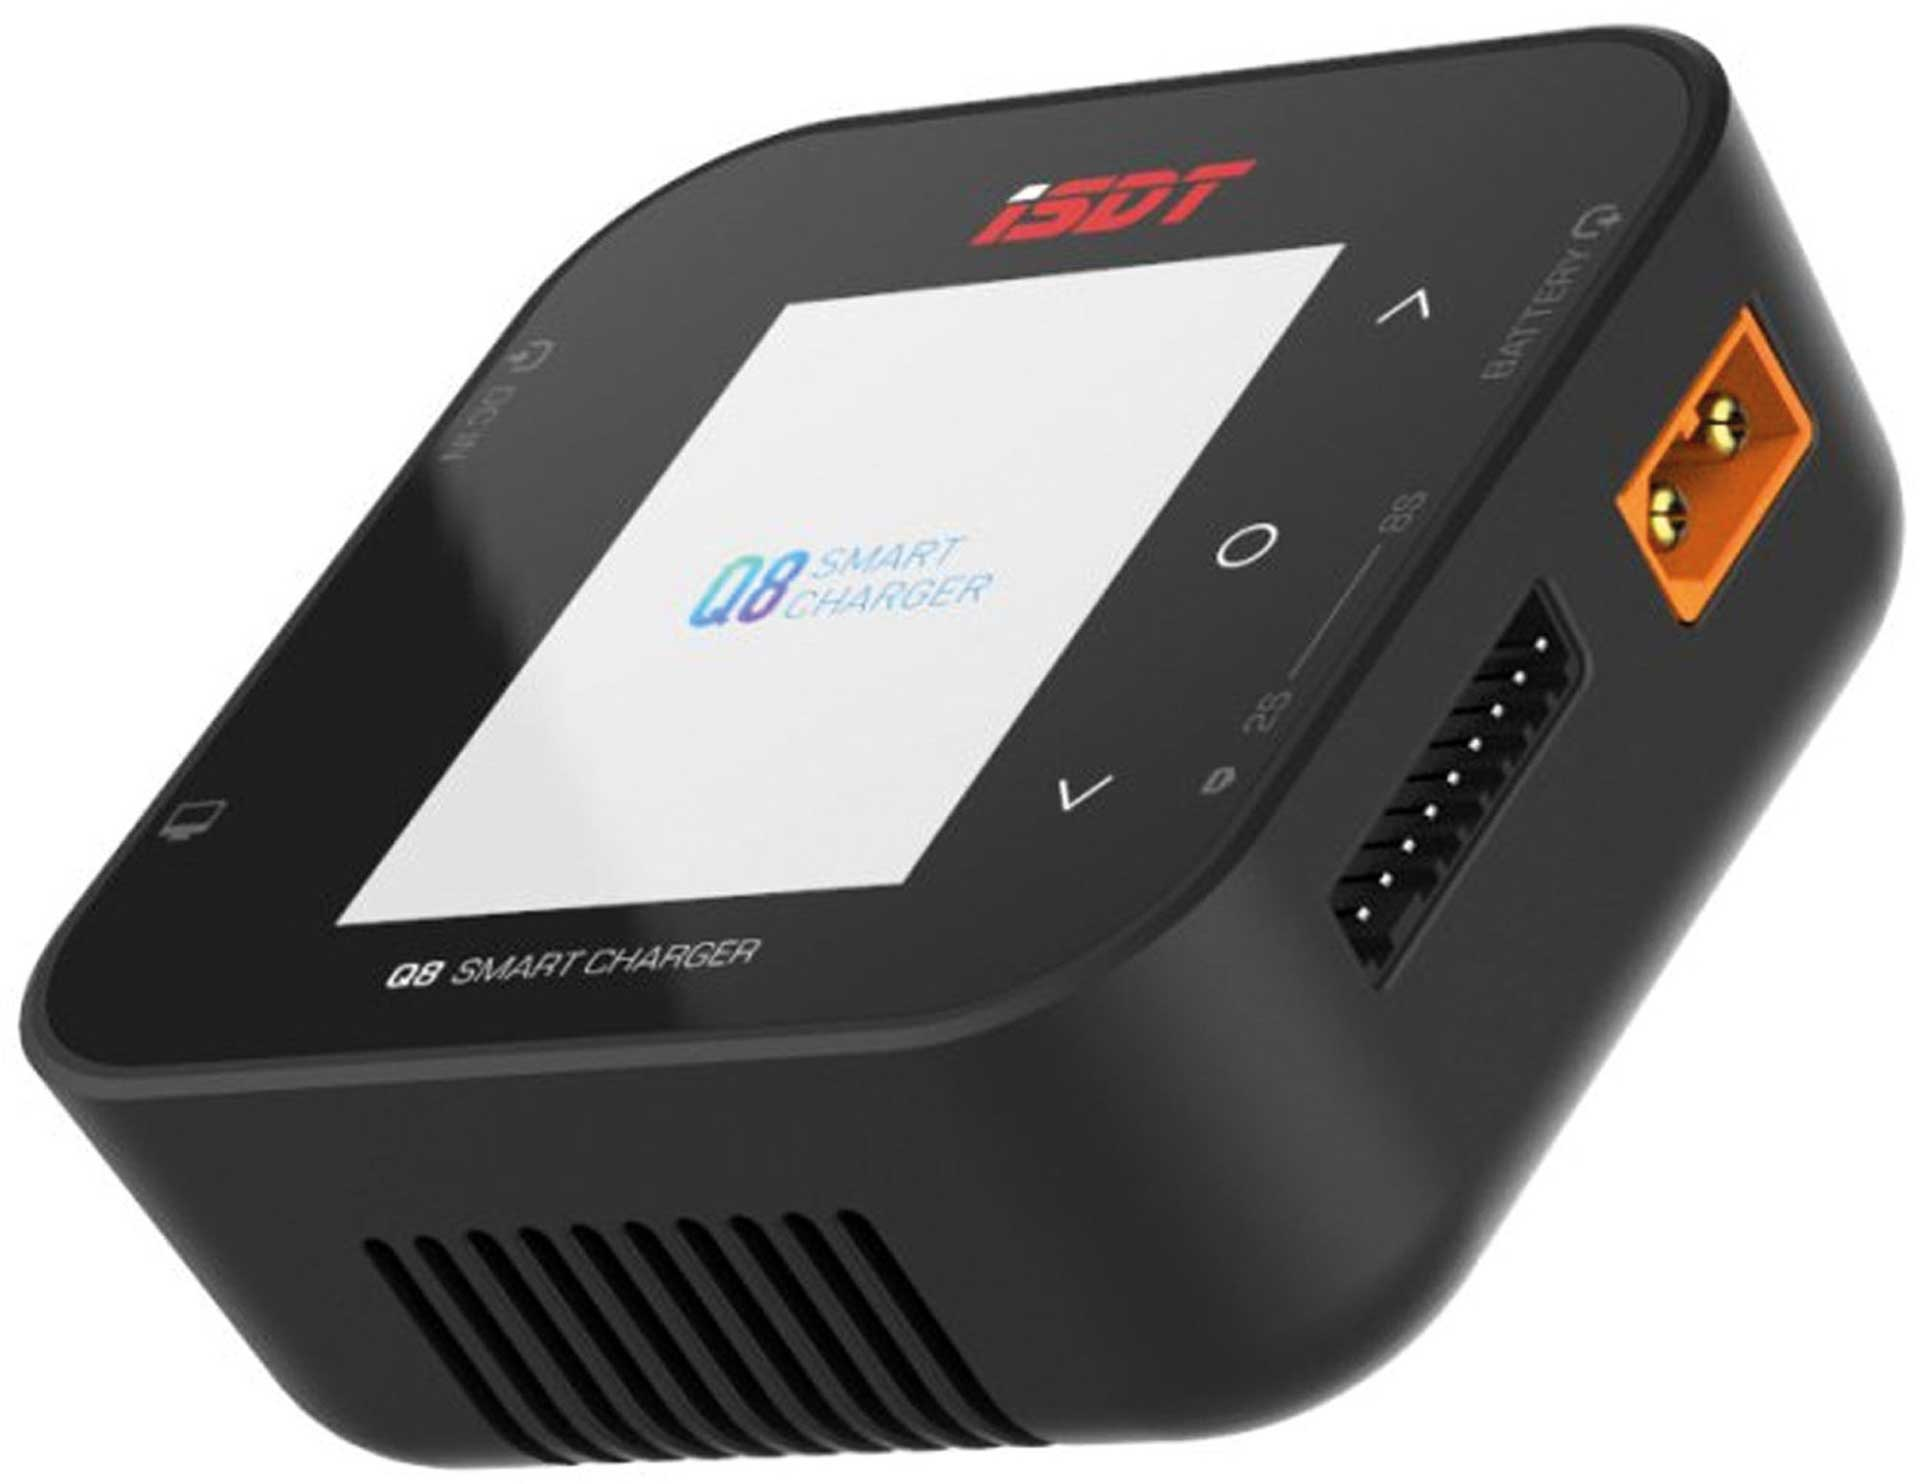 ISDT Q8 SMART CHARGER 500W MAX. 20A 1-8S